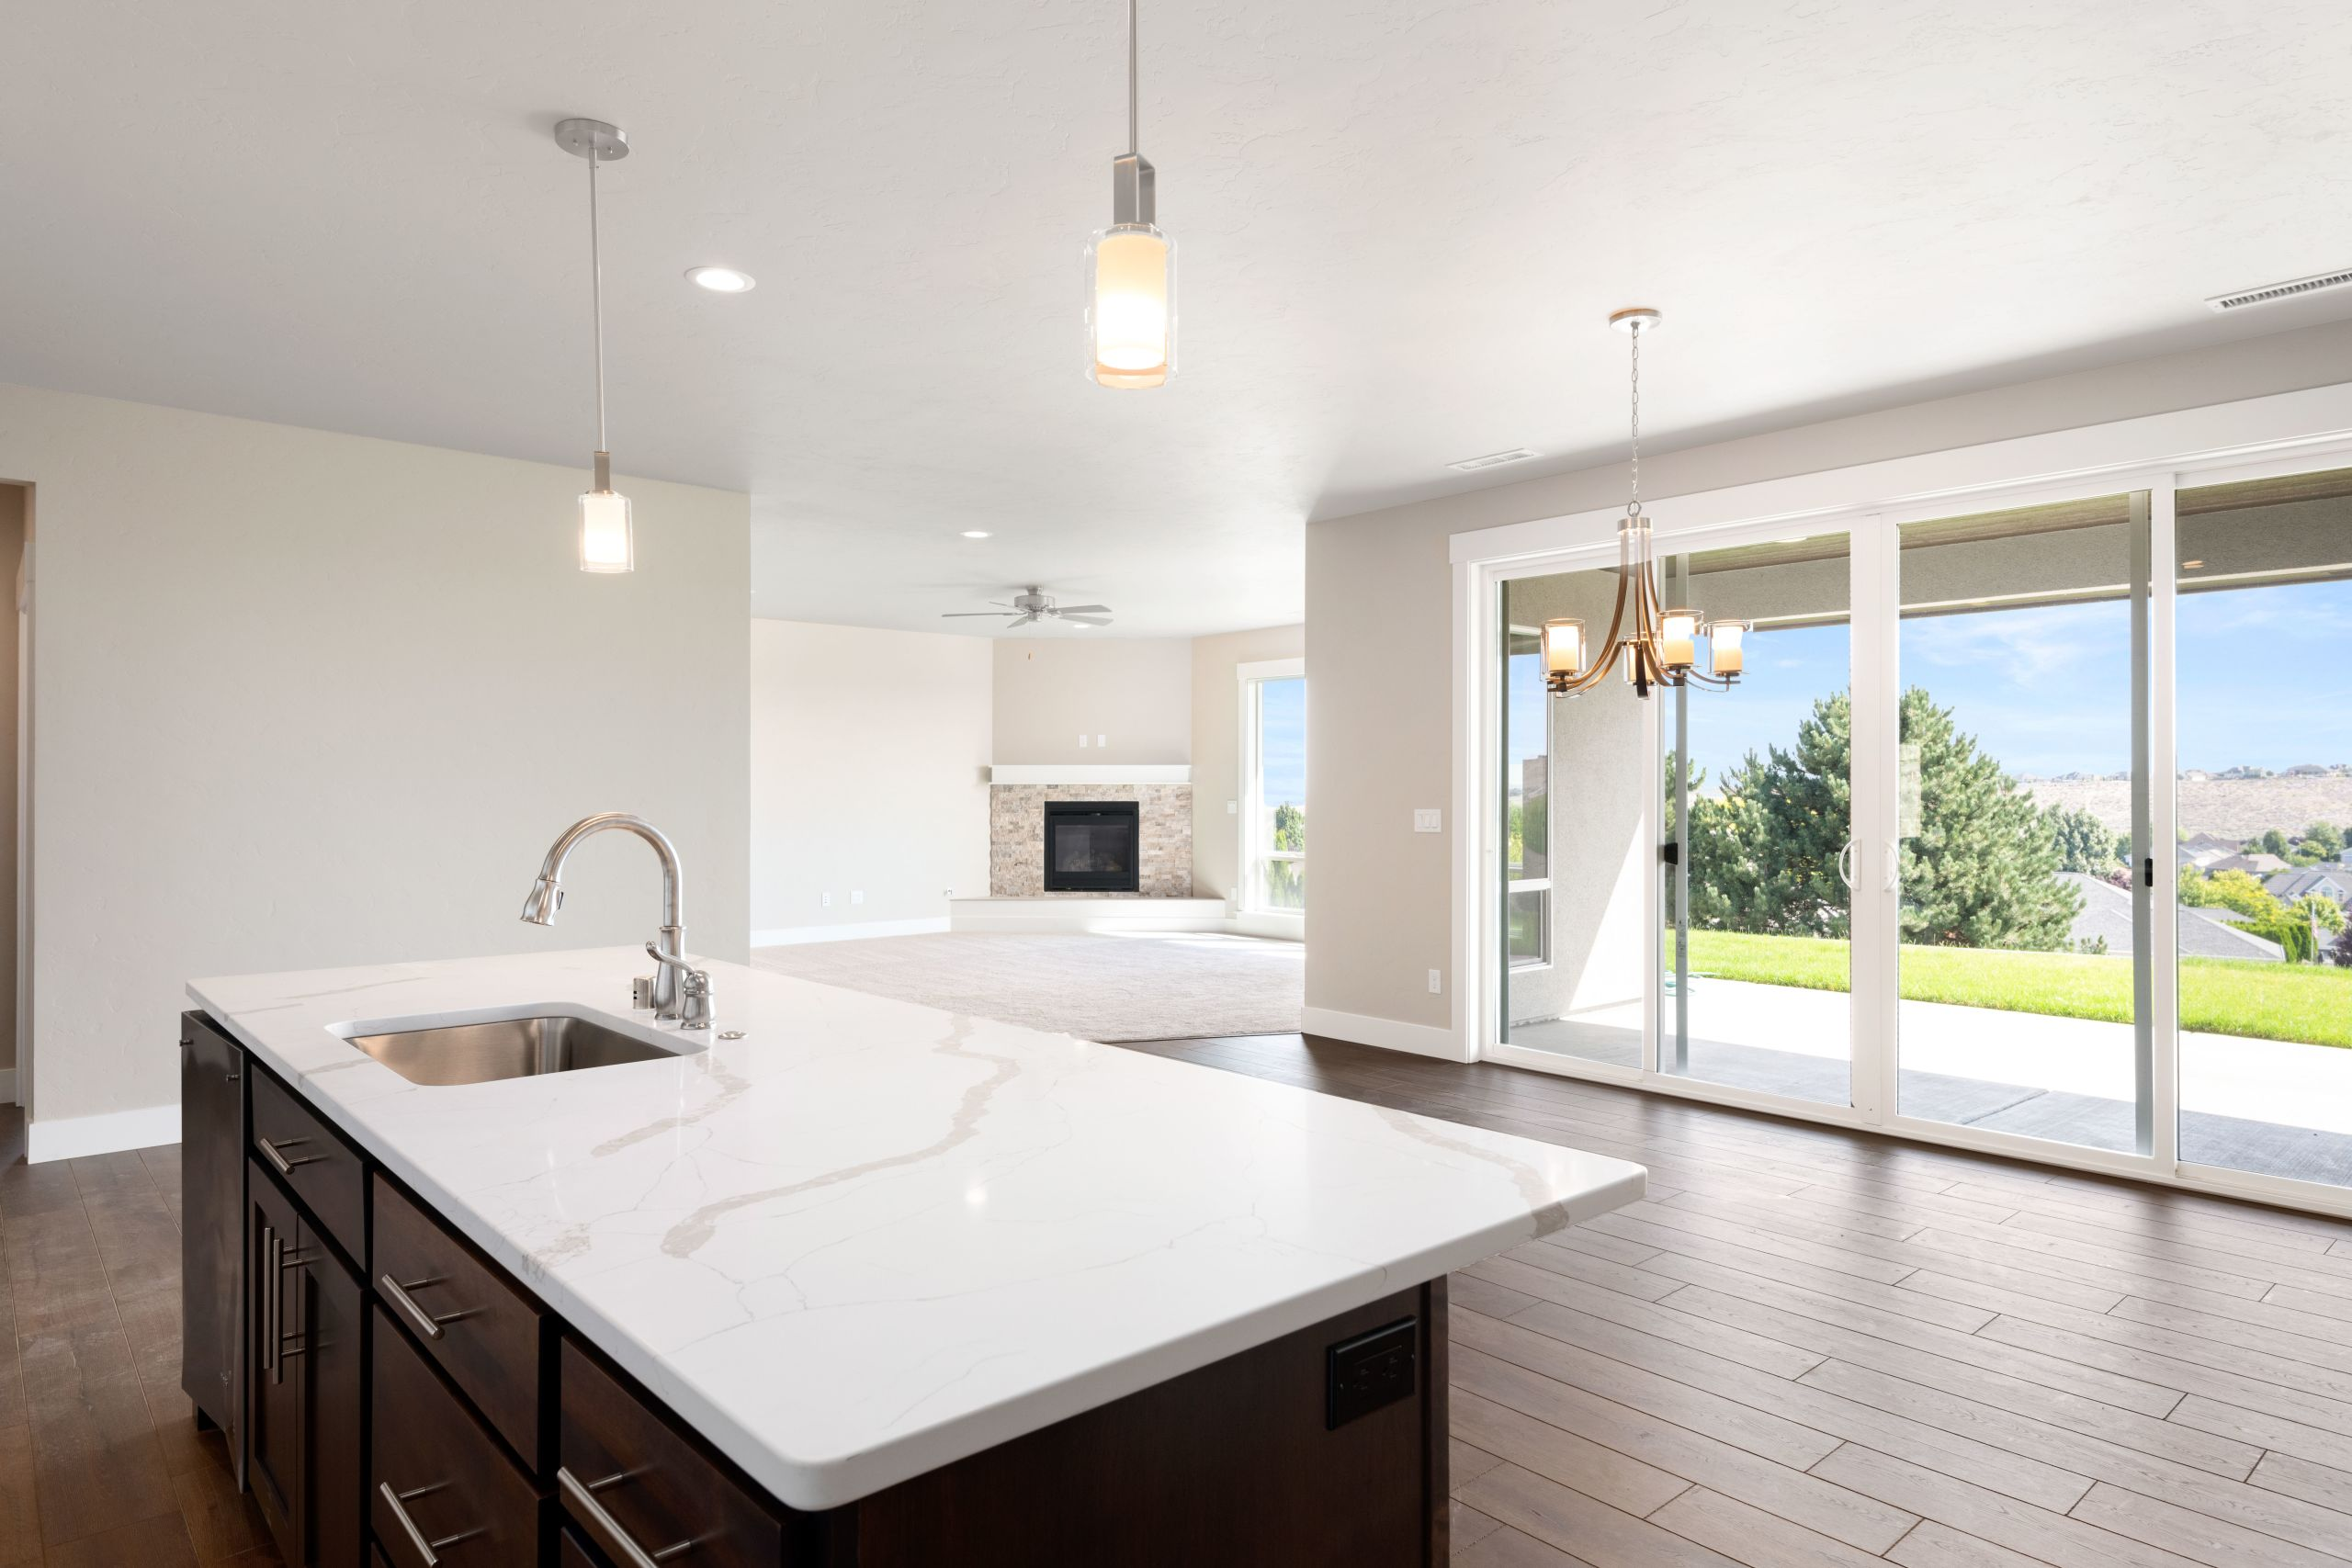 The Sienna In Jolianna Heights.  Offered at $579,900